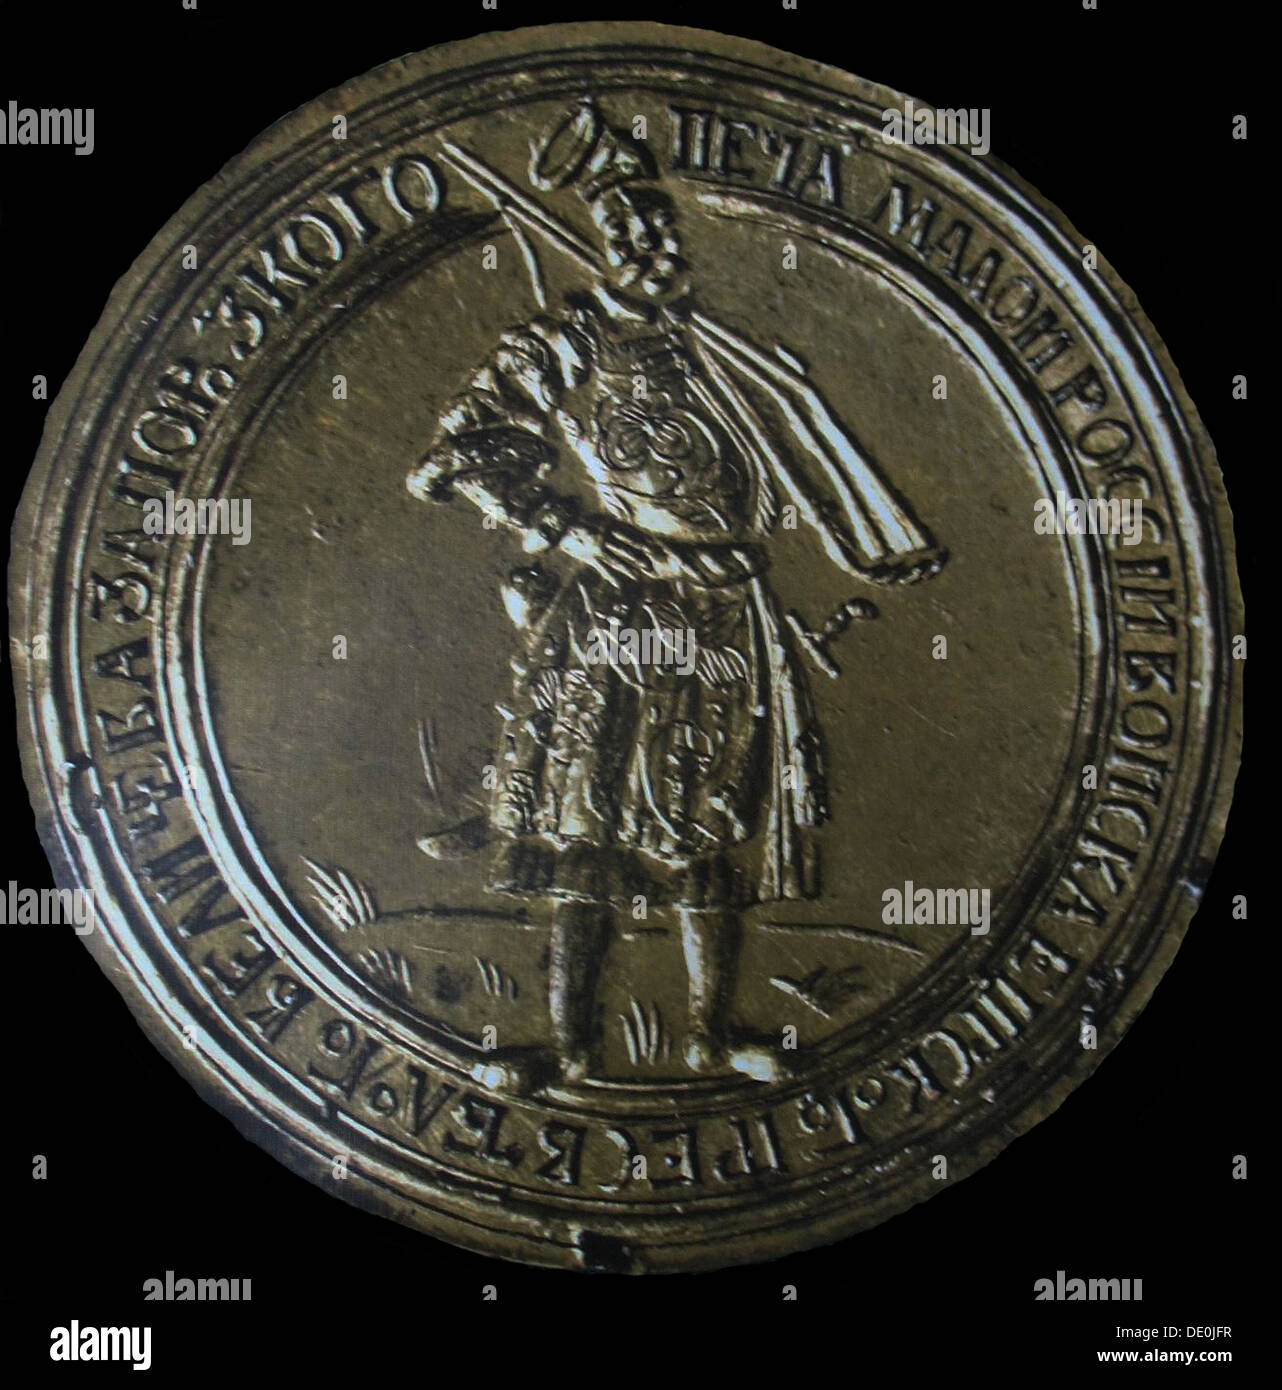 The Seal of Ivan Mazeppa, 17th century. Artist: Objects of History - Stock Image